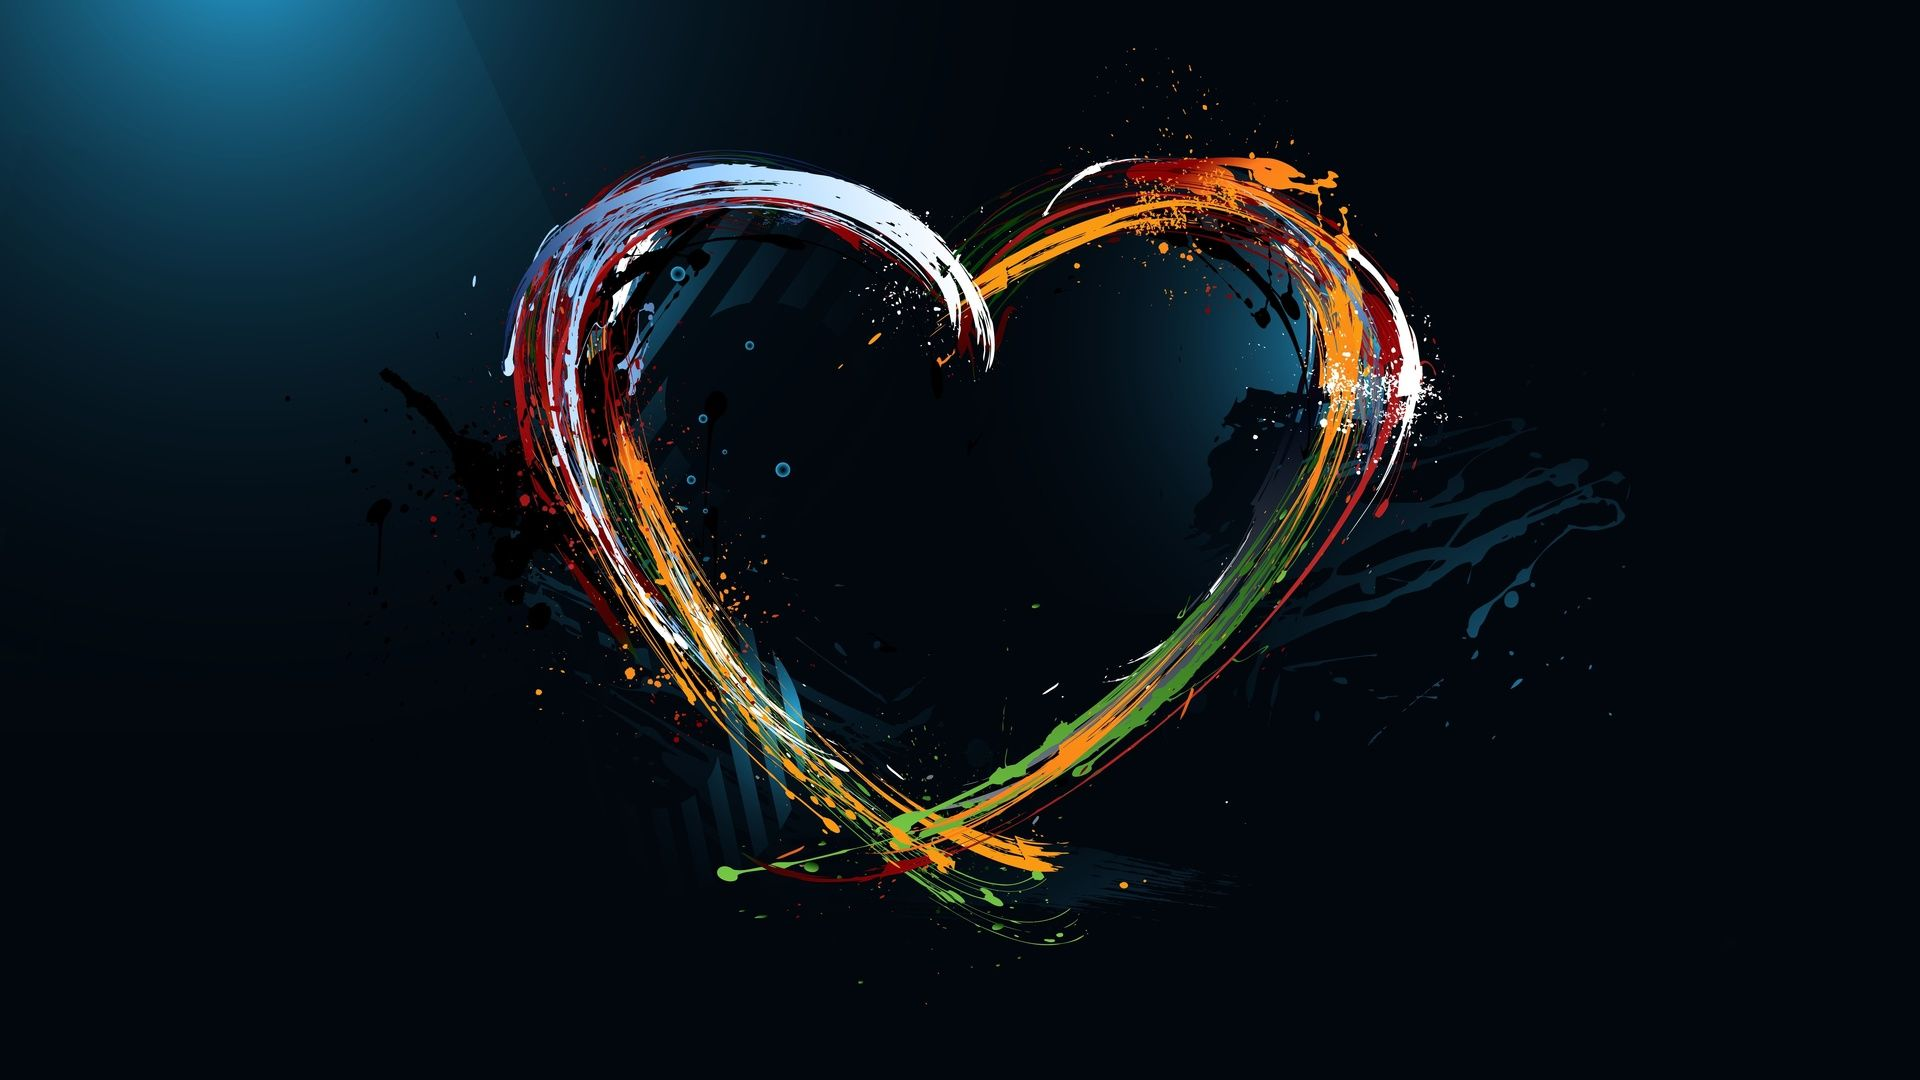 Image Of Love laptop background wallpaper